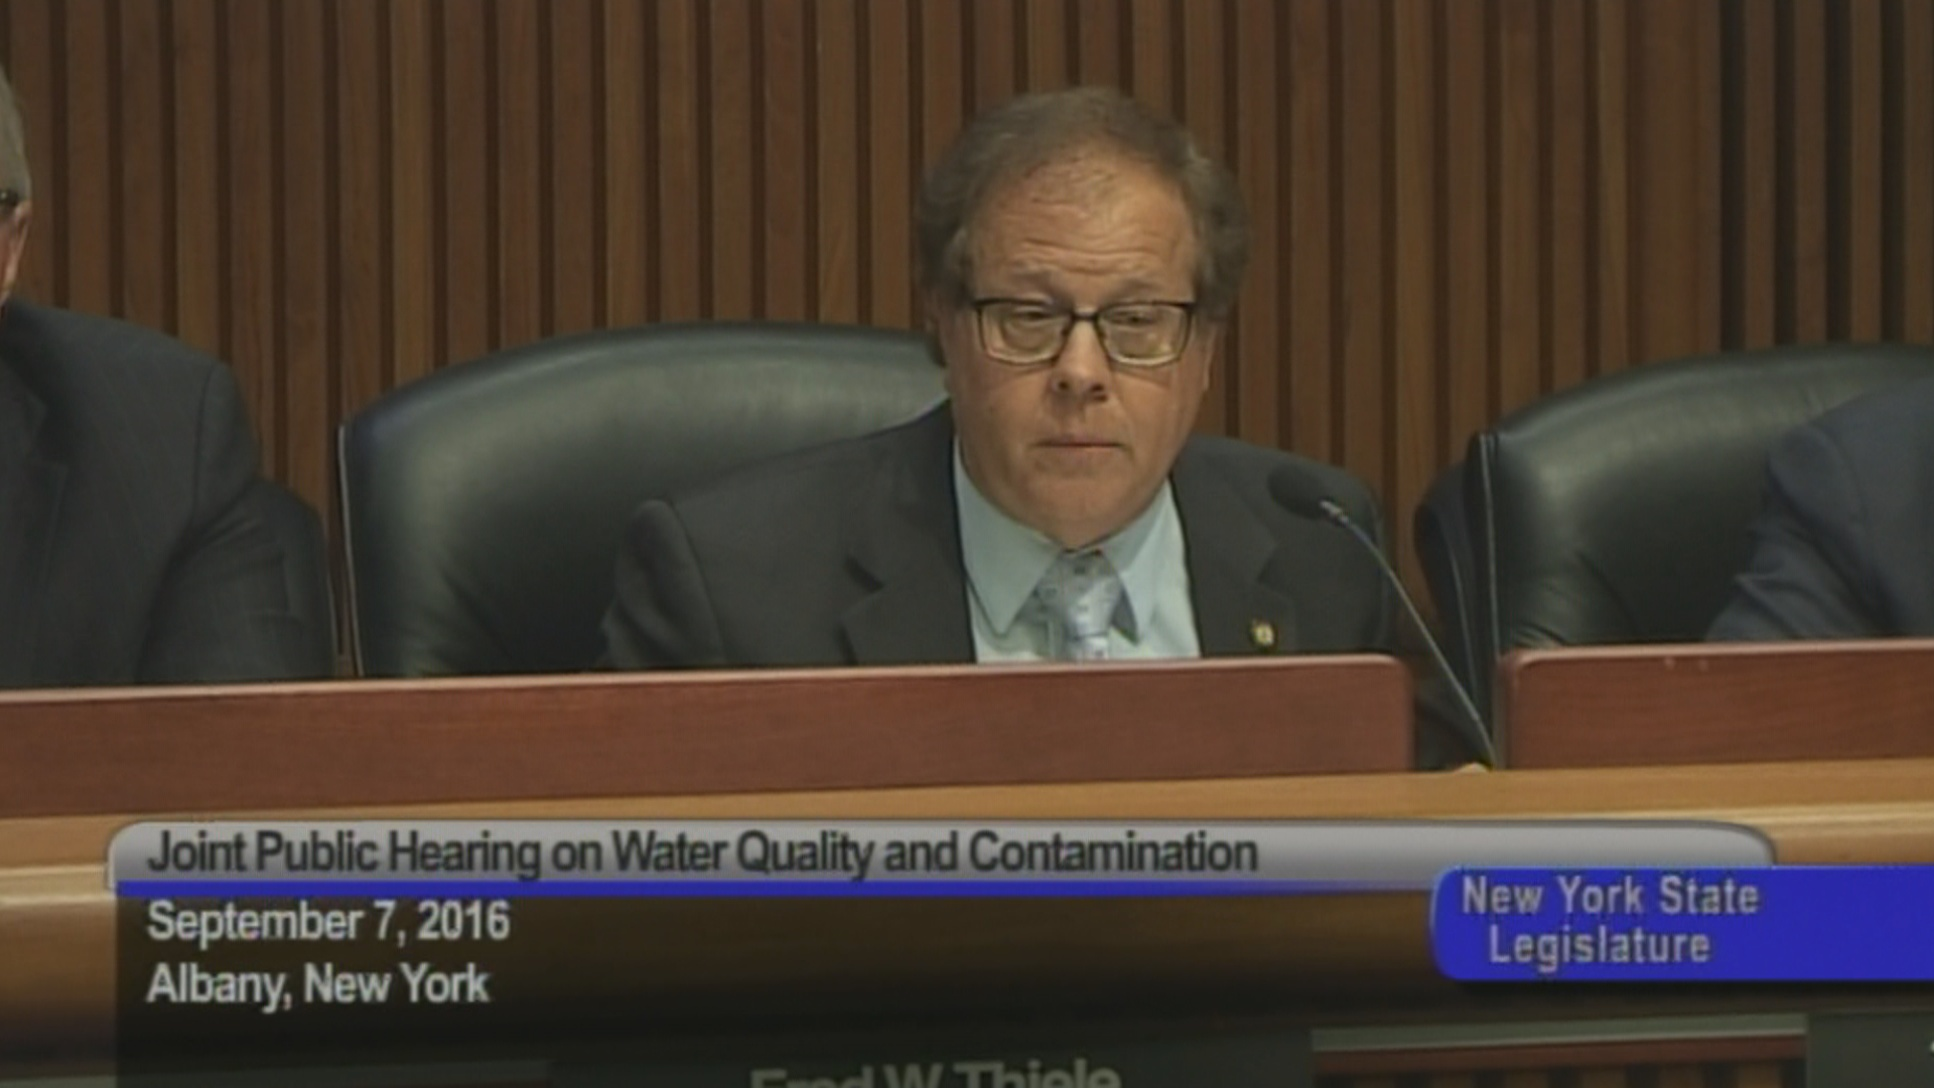 Joint Public Hearing on Water Quality and Contamination